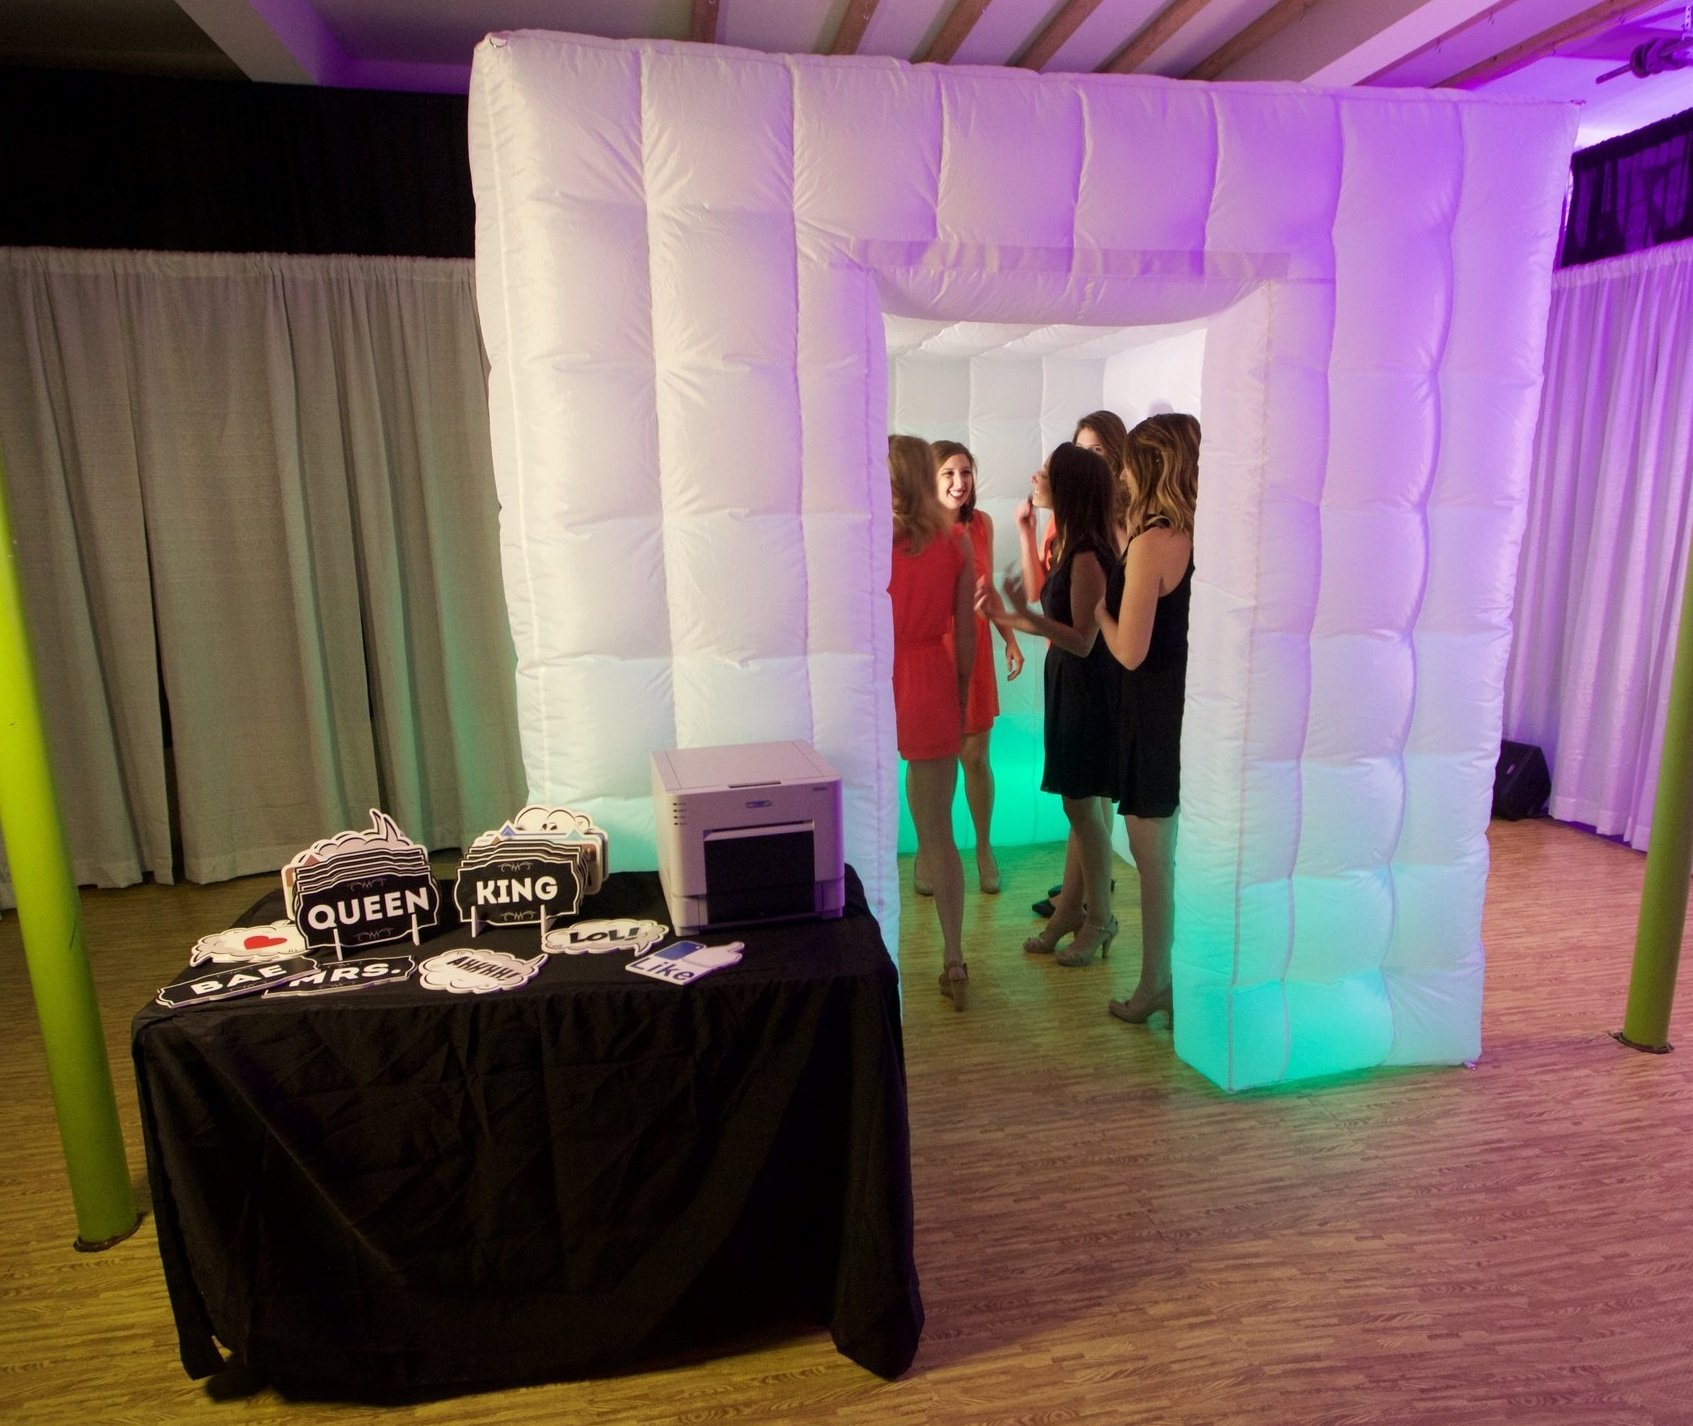 Inflatable Enclosed - A tufted white enclosed photo experience.